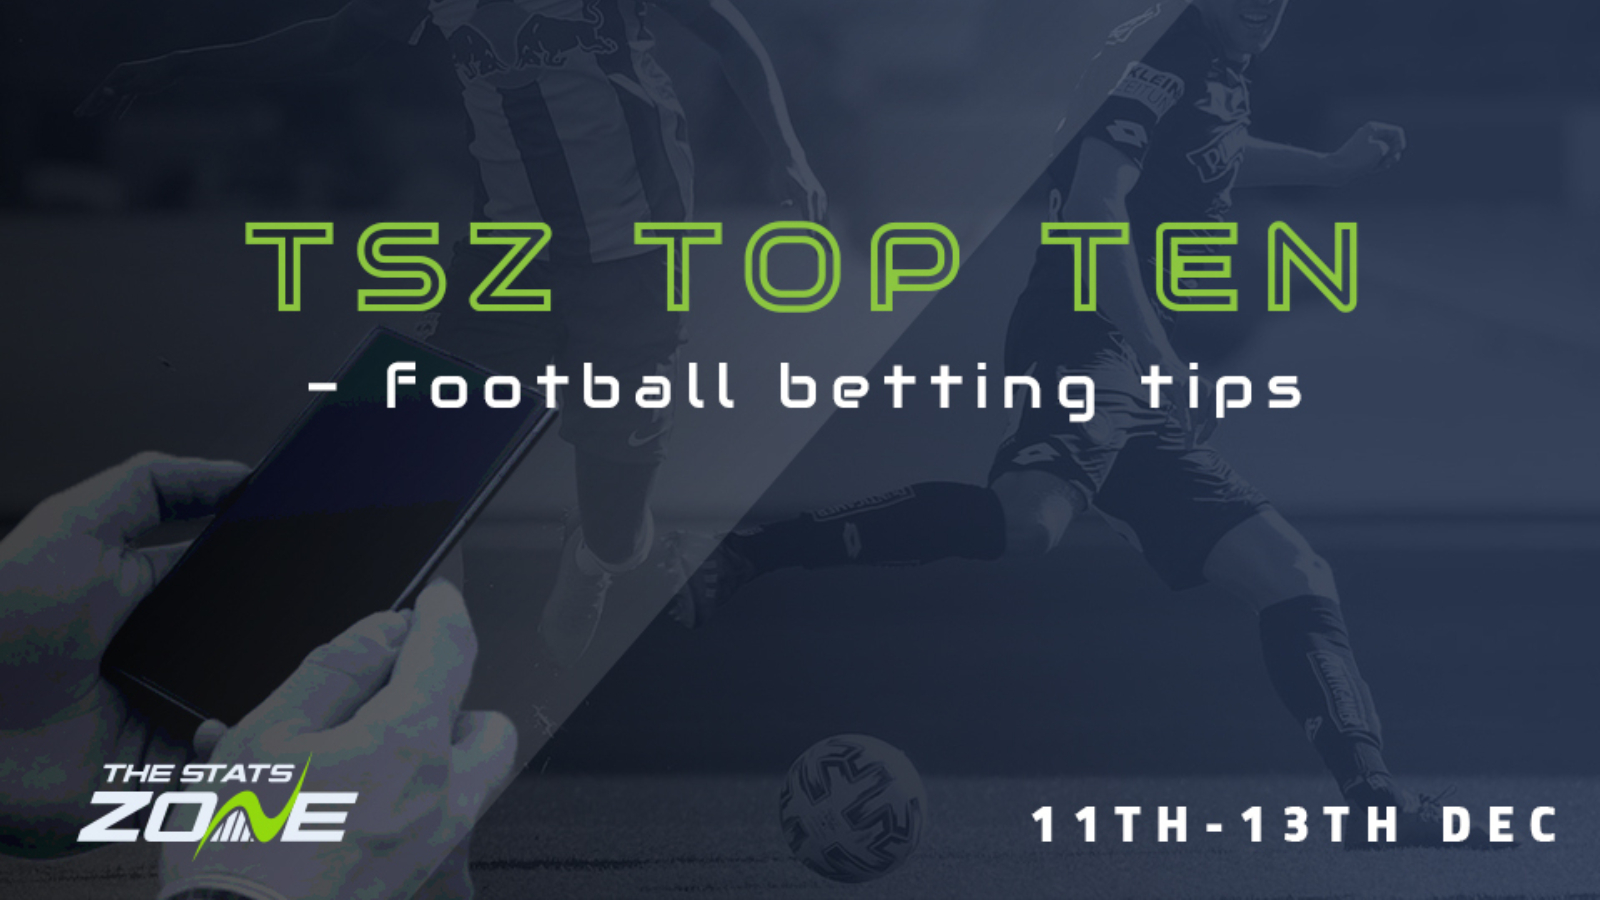 Weekend betting tips football double chance betting predictions free